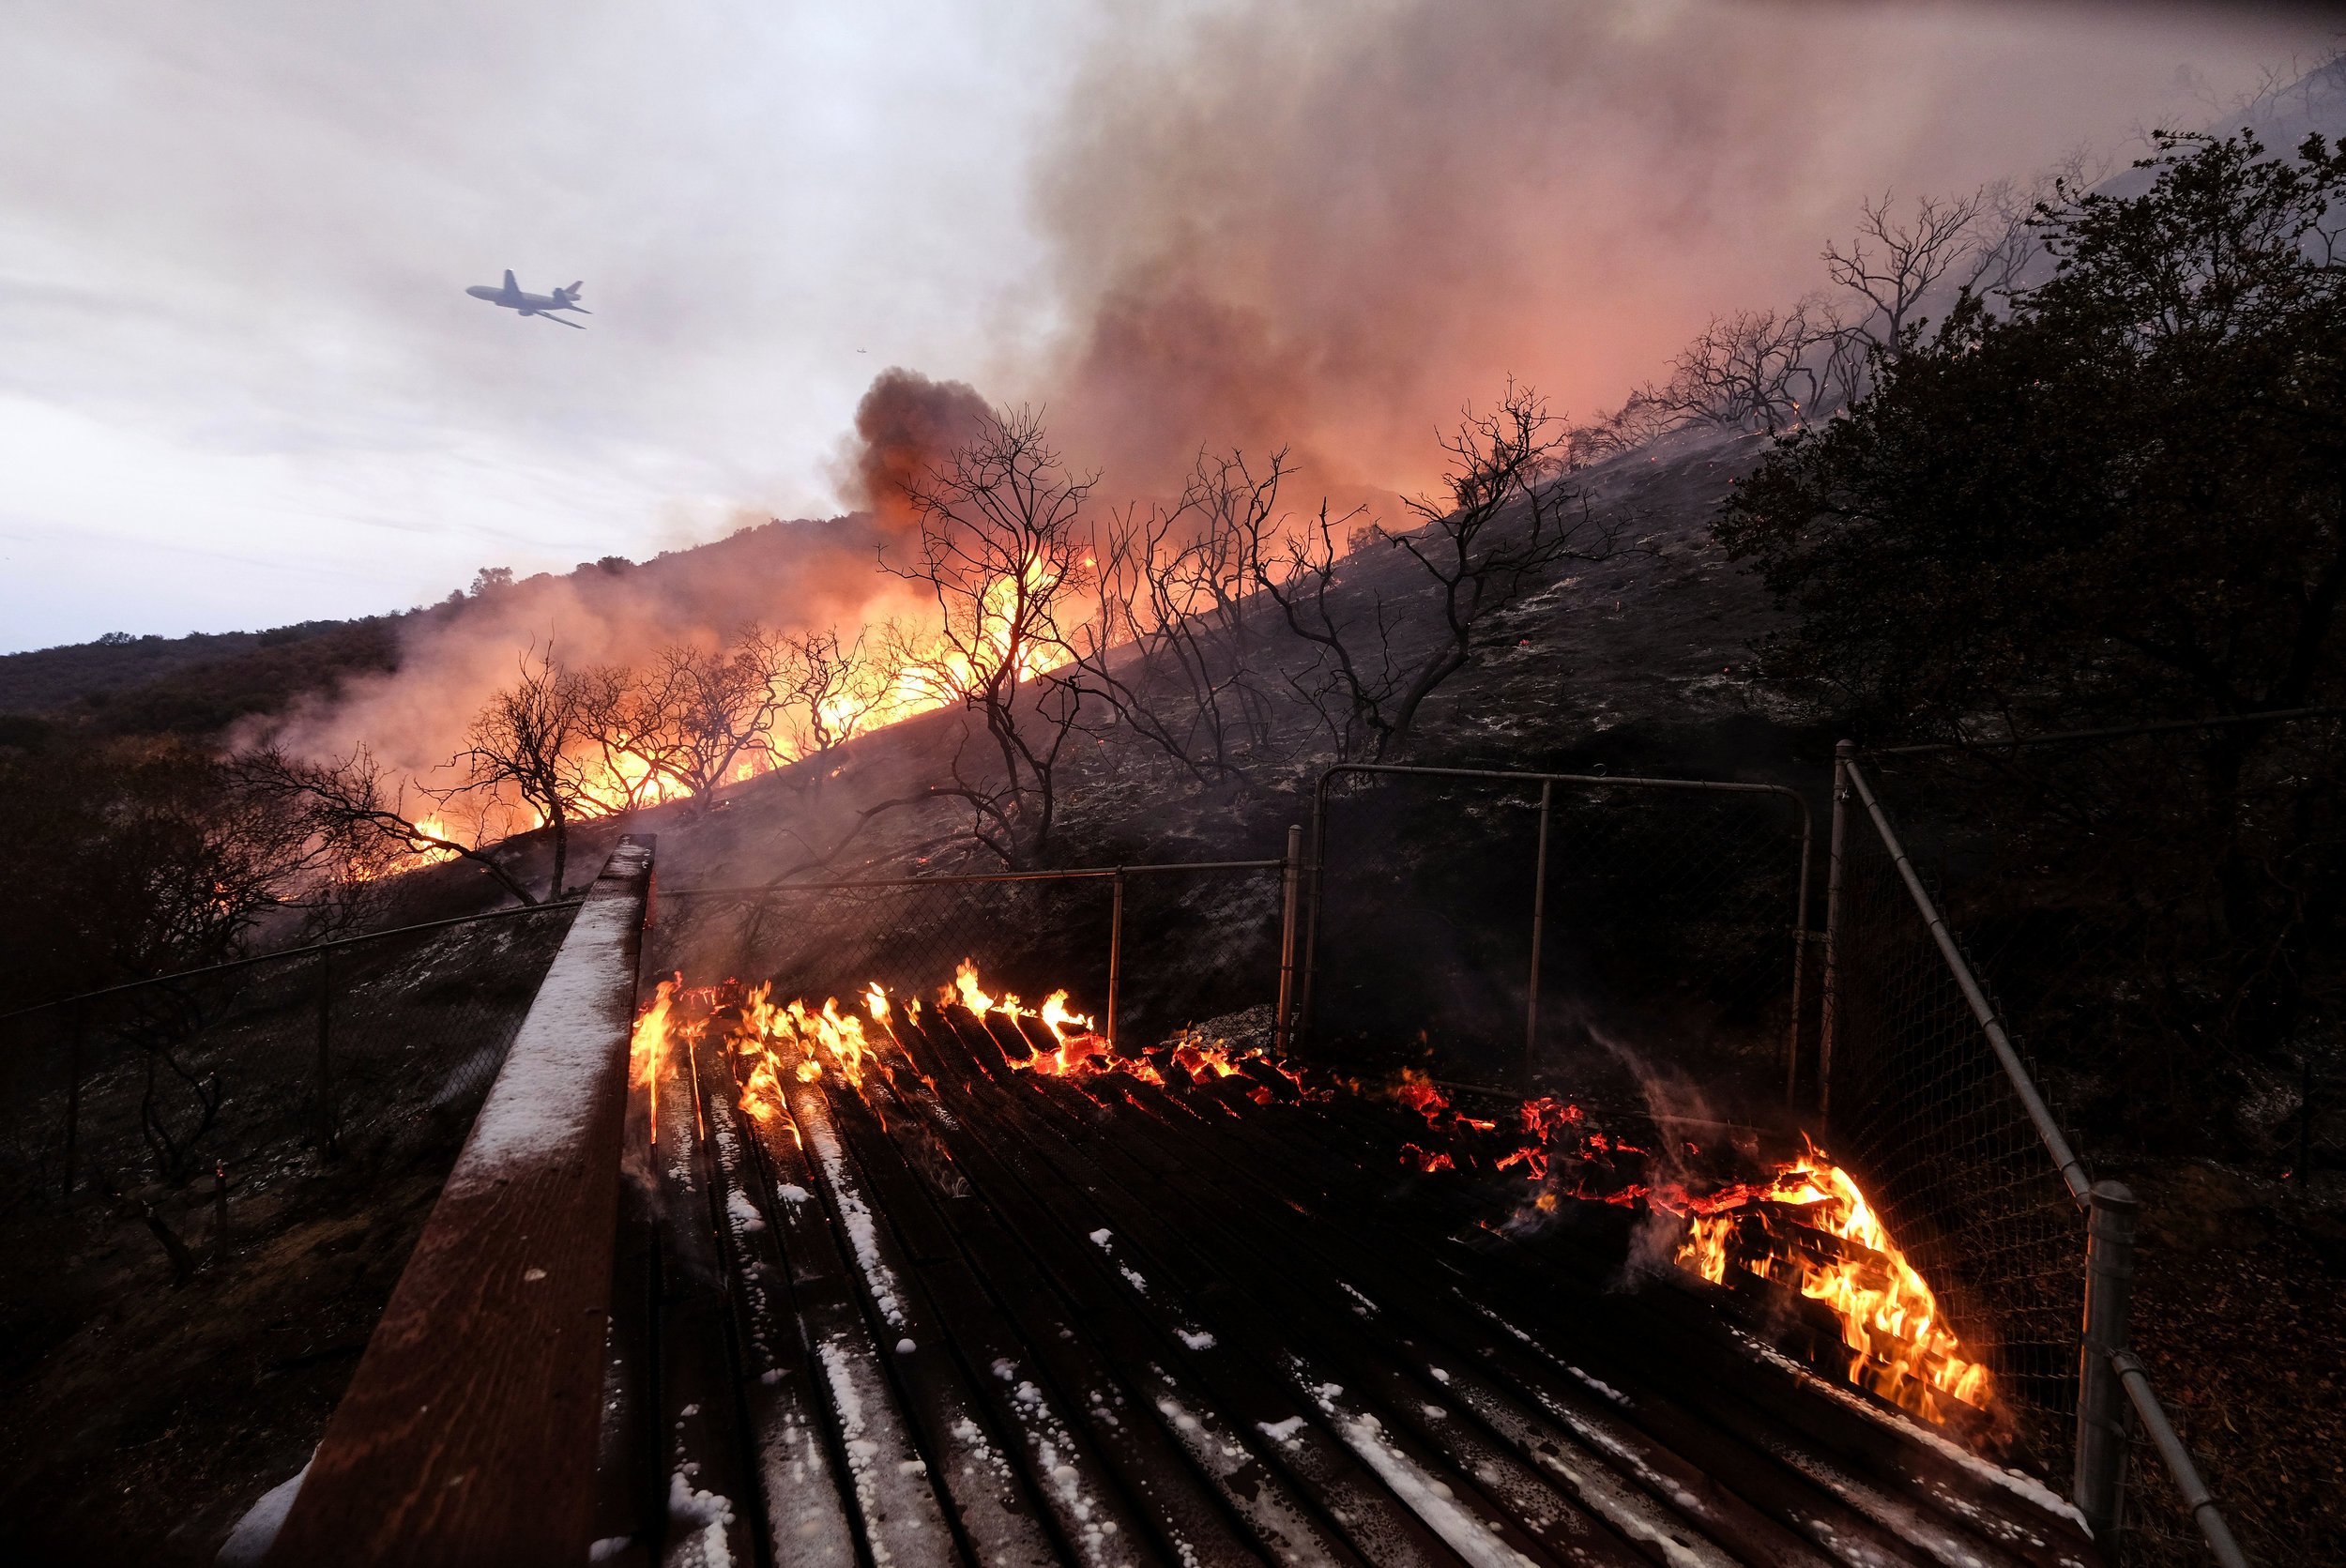 The Holy Fire burns at a home's back yard in the Cleveland National Forest in Lake Elsinore, Calif., Thursday, Aug. 9, 2018.